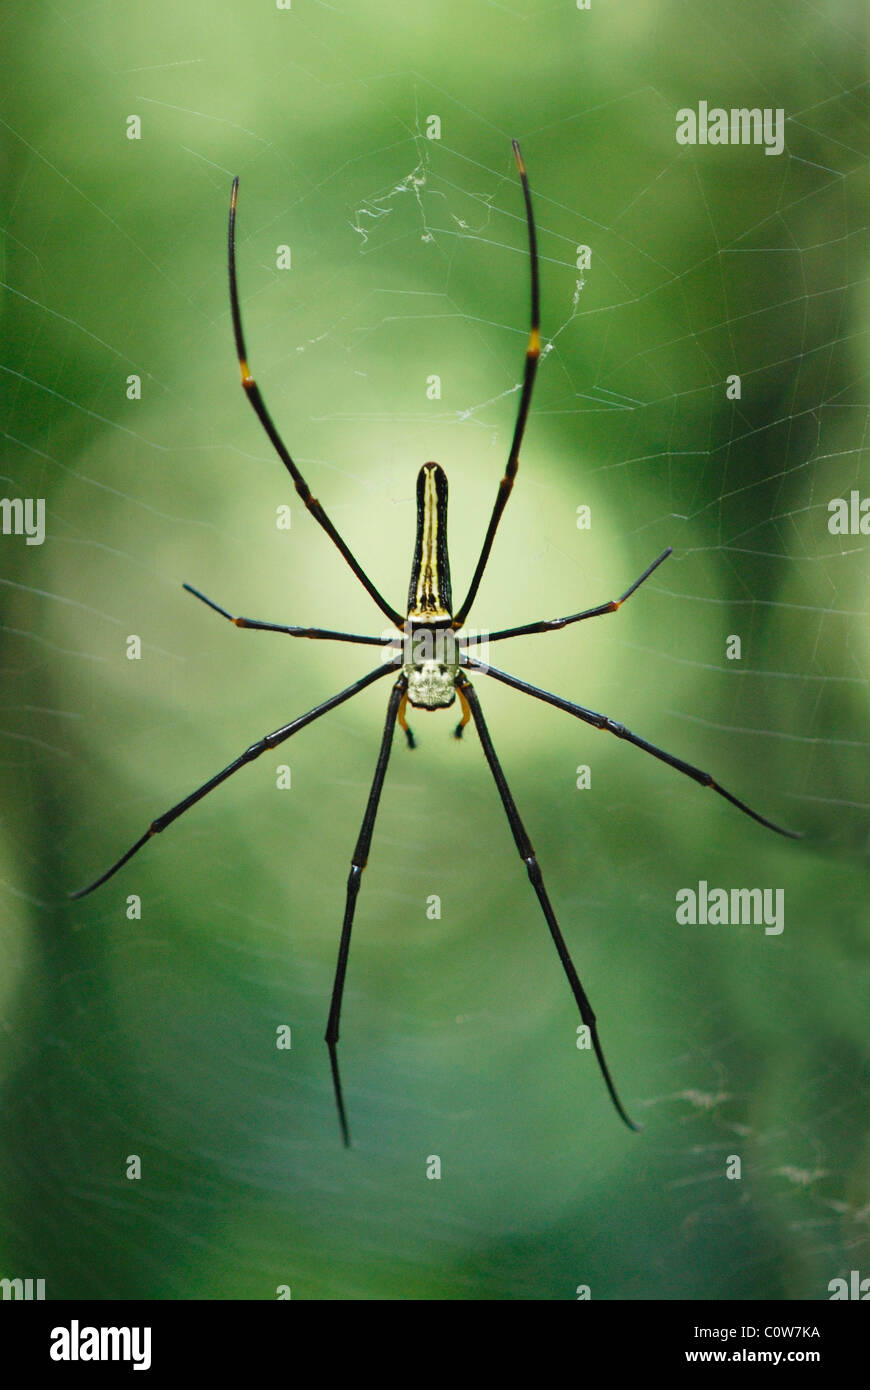 Giant Golden Orb Weaver Spider on its web in the Sinharaja Rainforest,, Sri Lanka - Stock Image